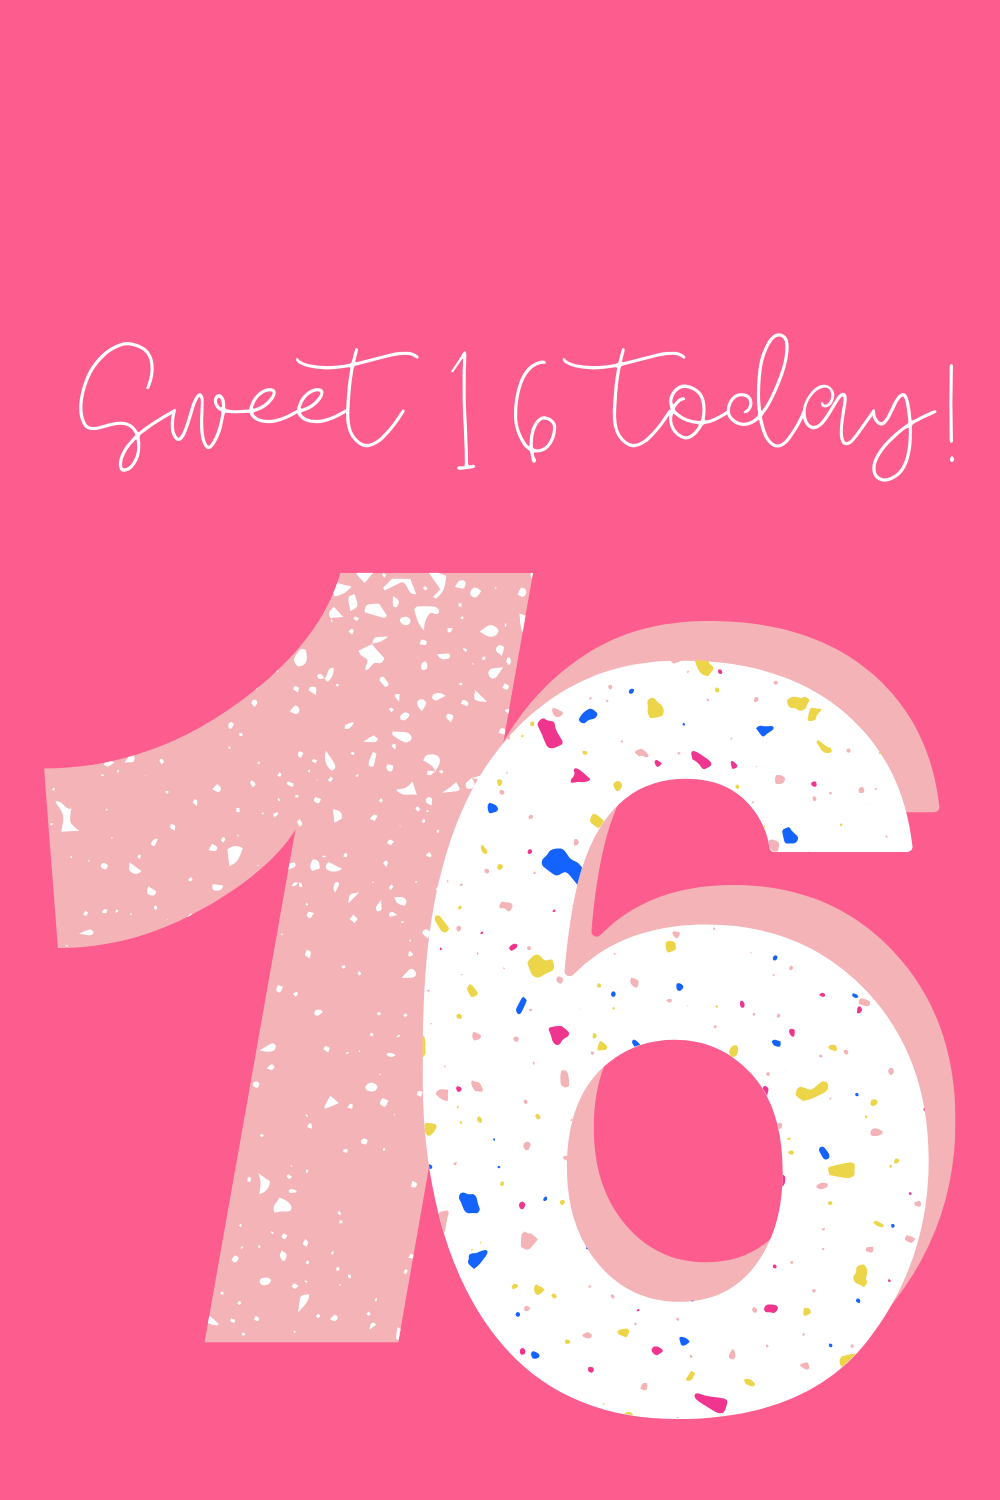 sweet 16 quotes